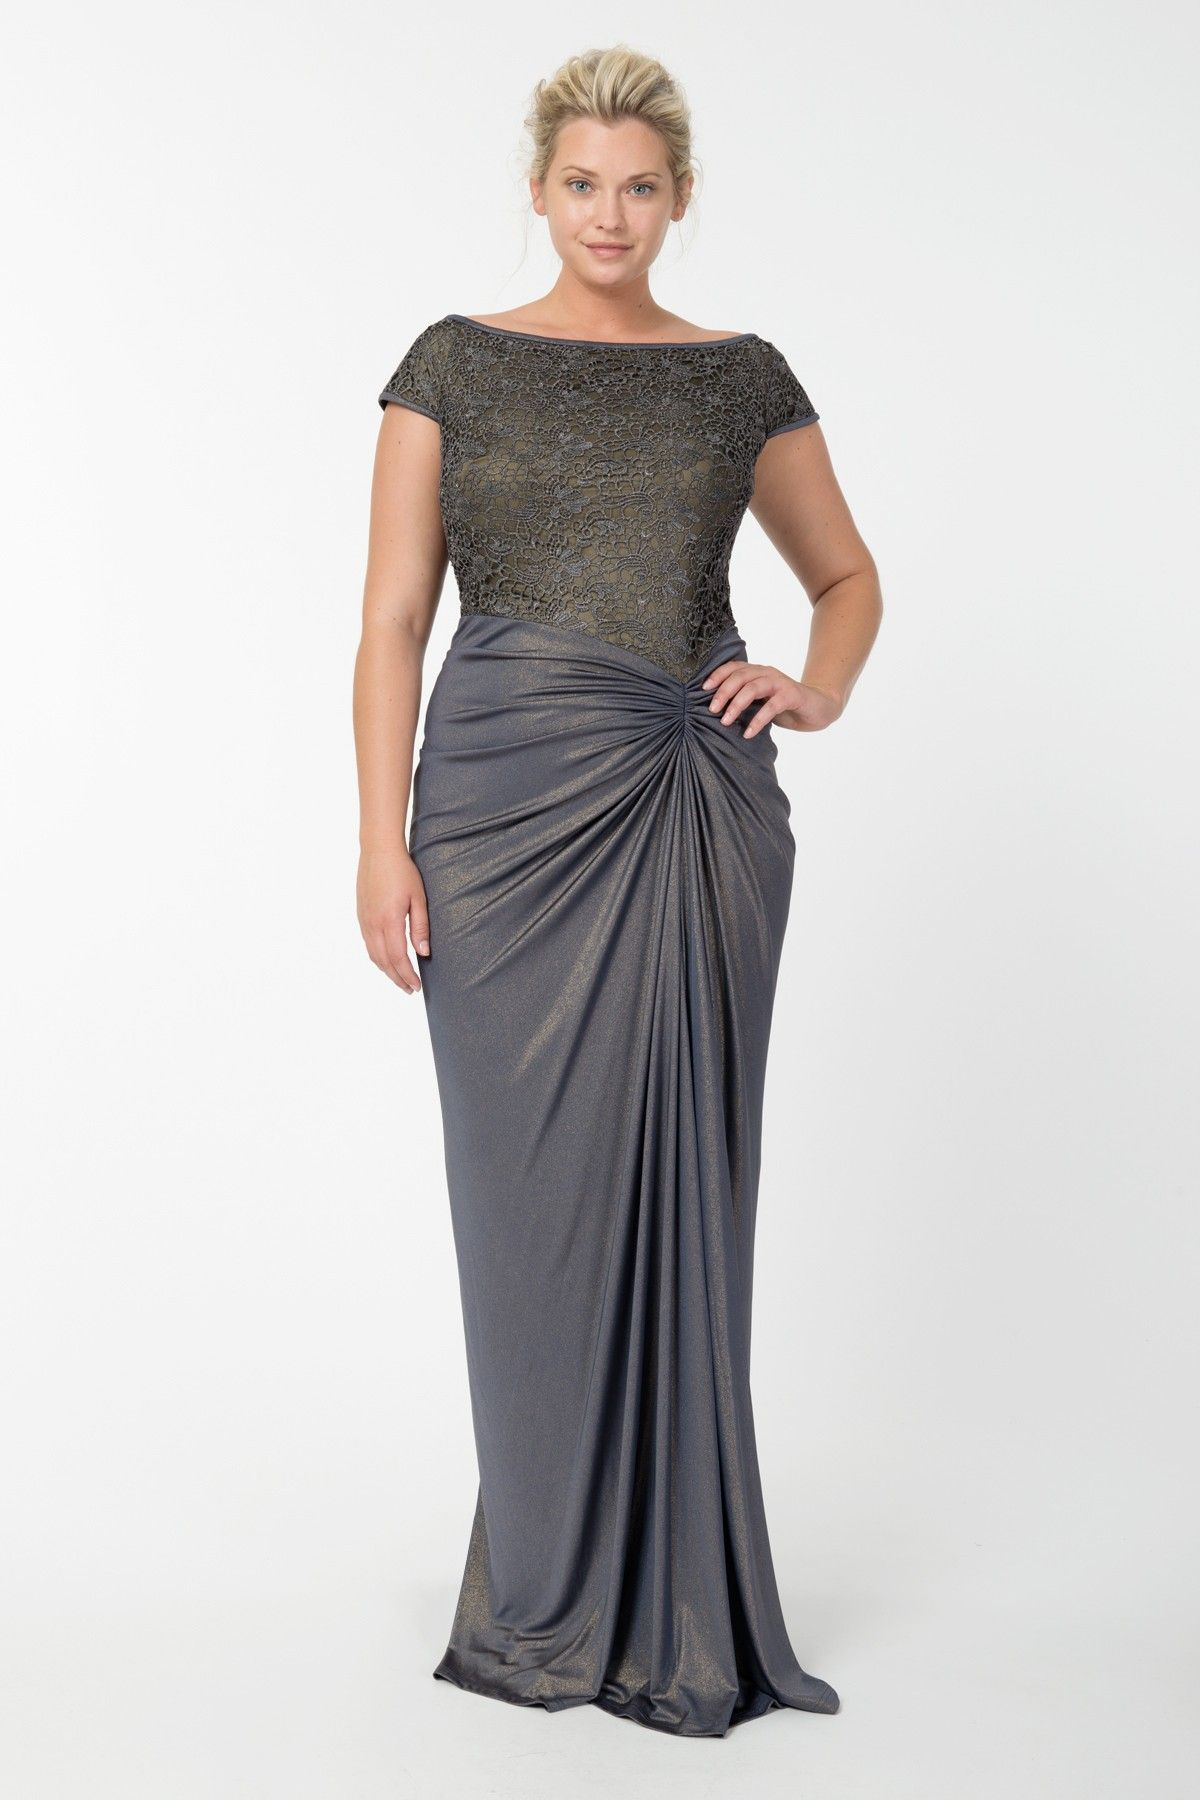 Best wedding dress for size 20  plus size evening gowns  Google Search  Plus size clothes